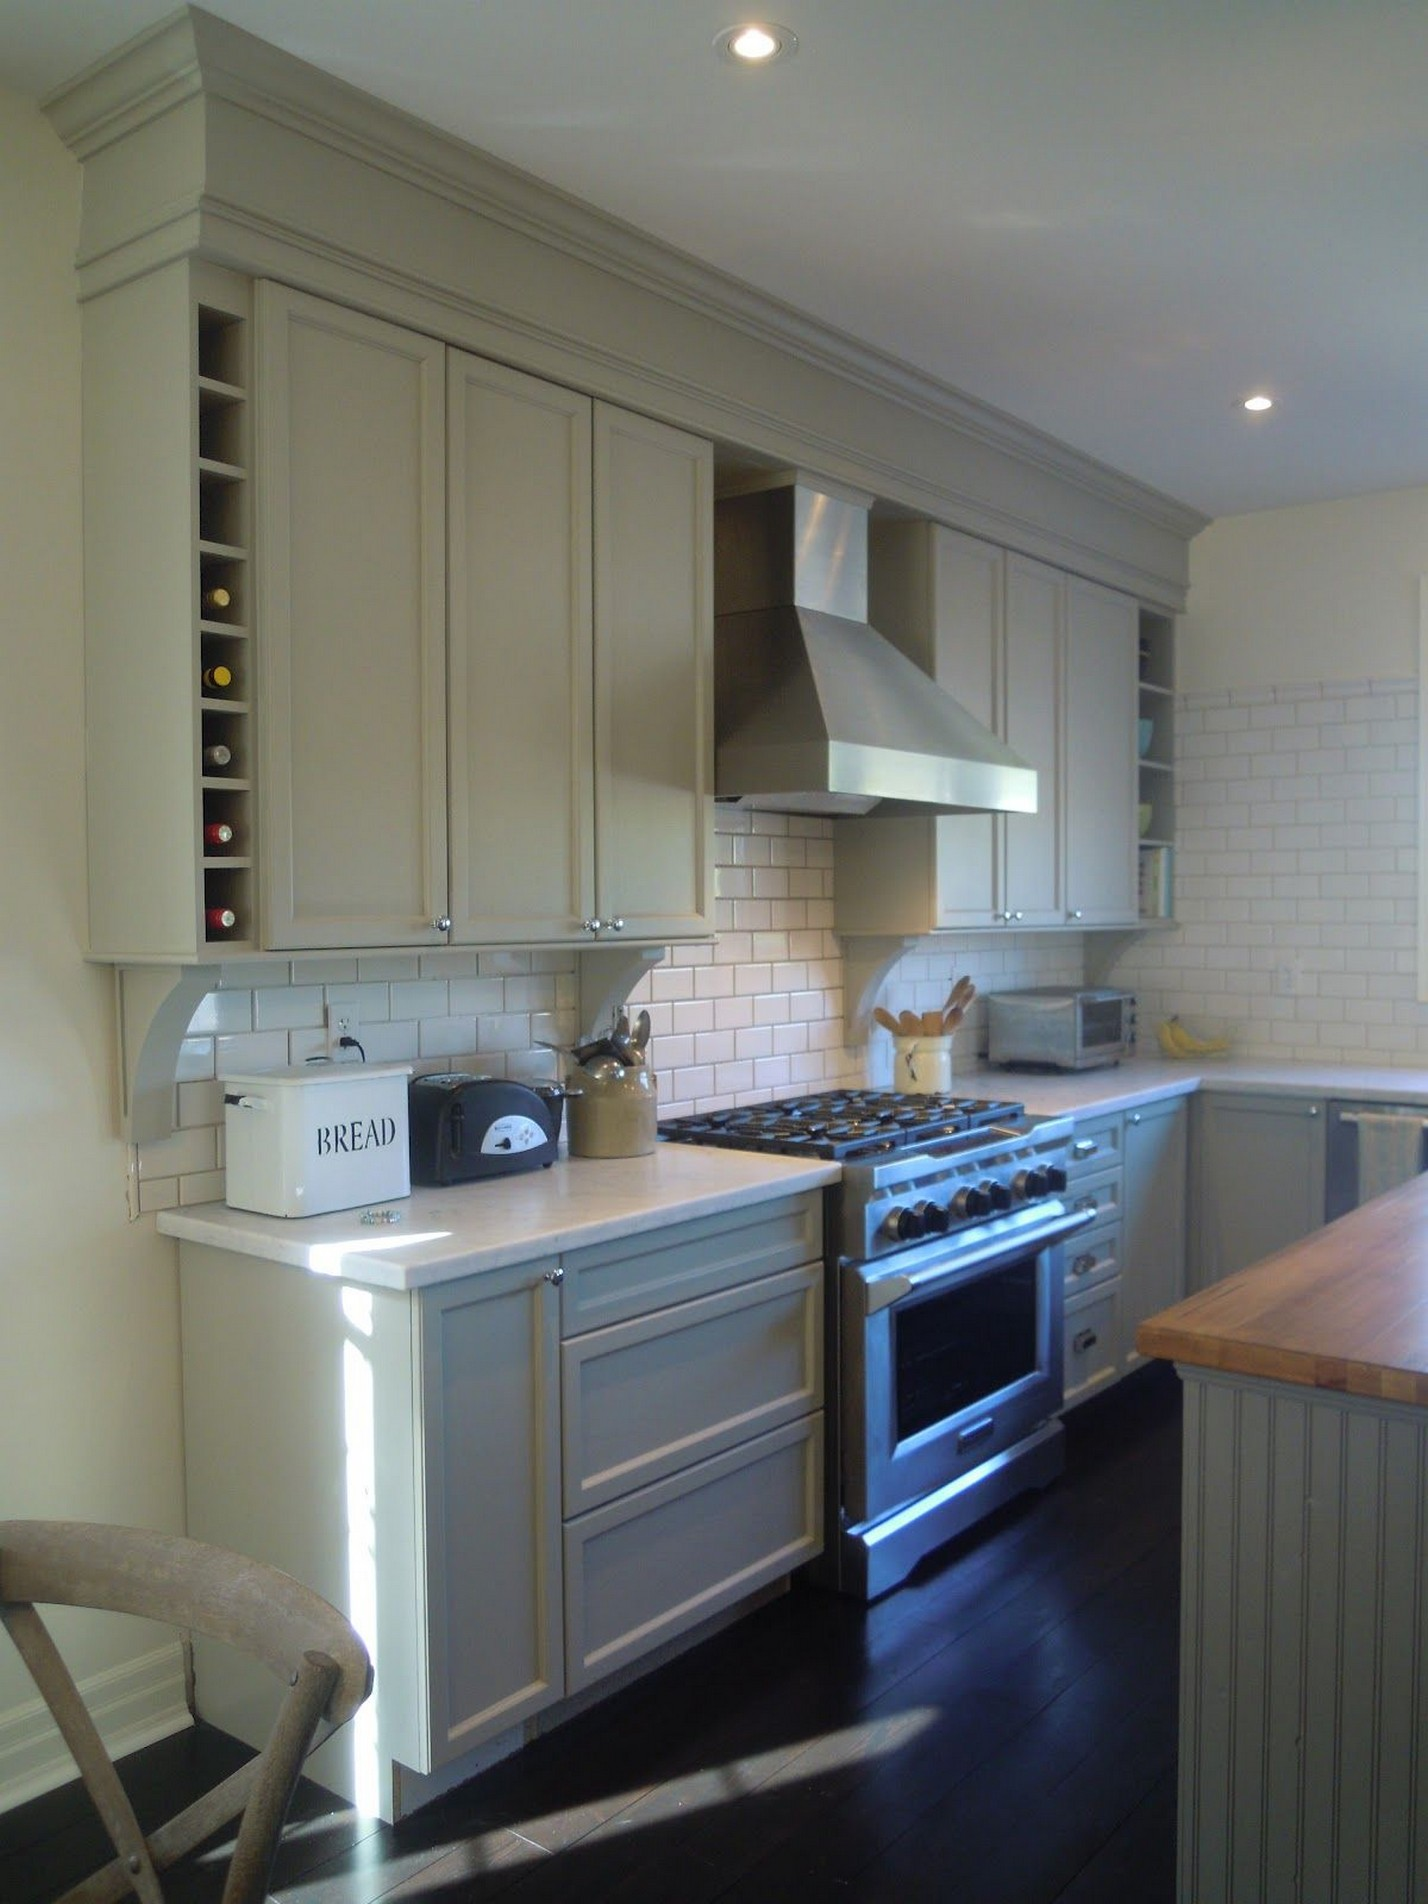 71 Painted Kitchen Cabinets Ideas For Home Decor 5